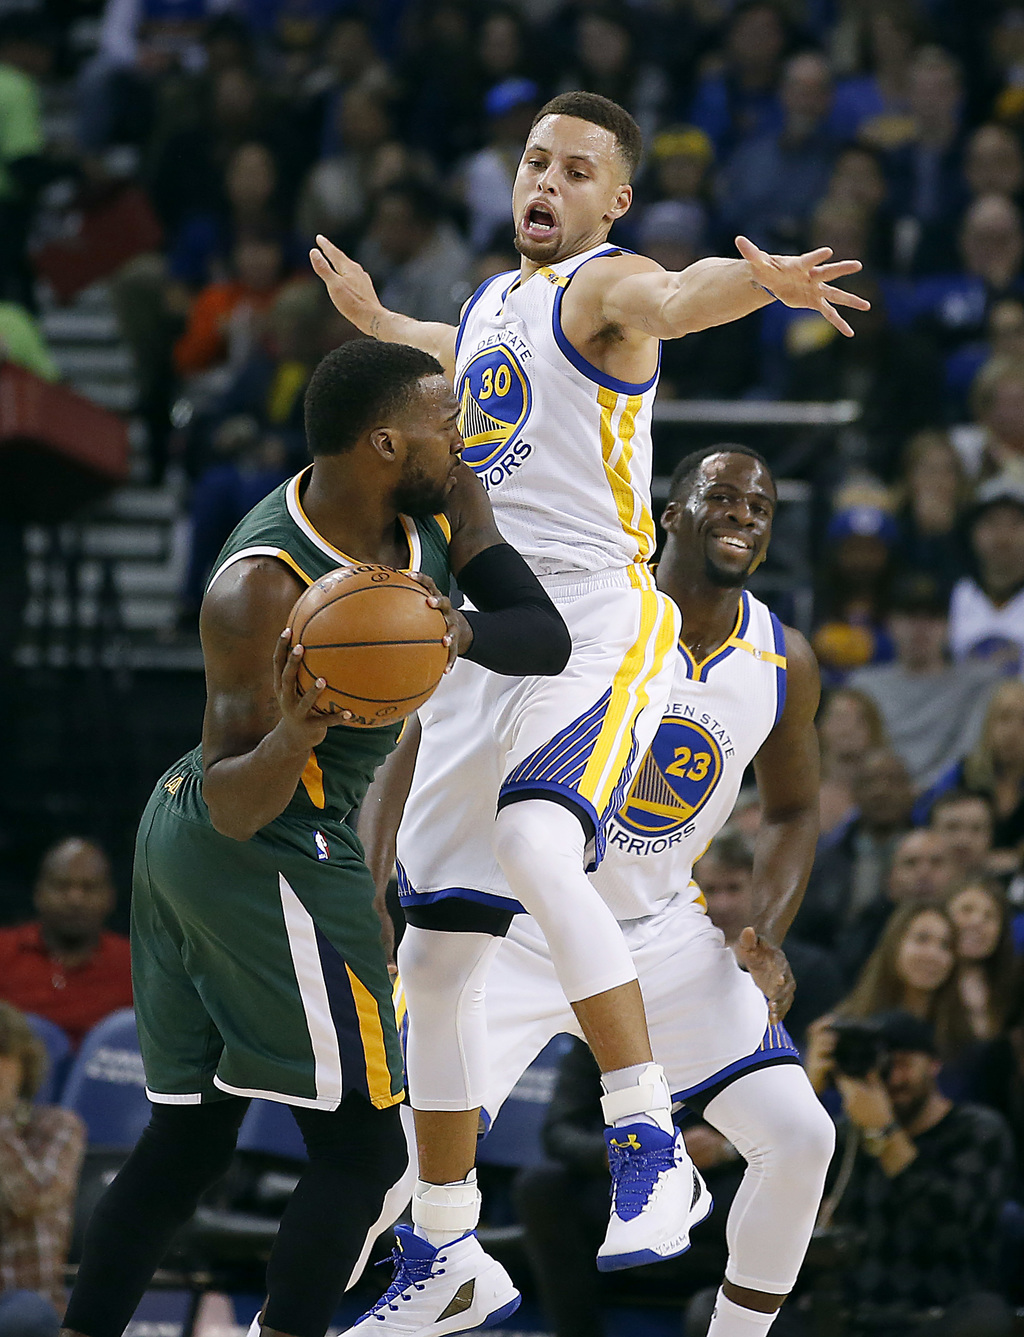 Golden State Warriors guard Stephen Curry (30) guards against Utah Jazz guard Shelvin Mack, left, during the first half of an NBA baske...